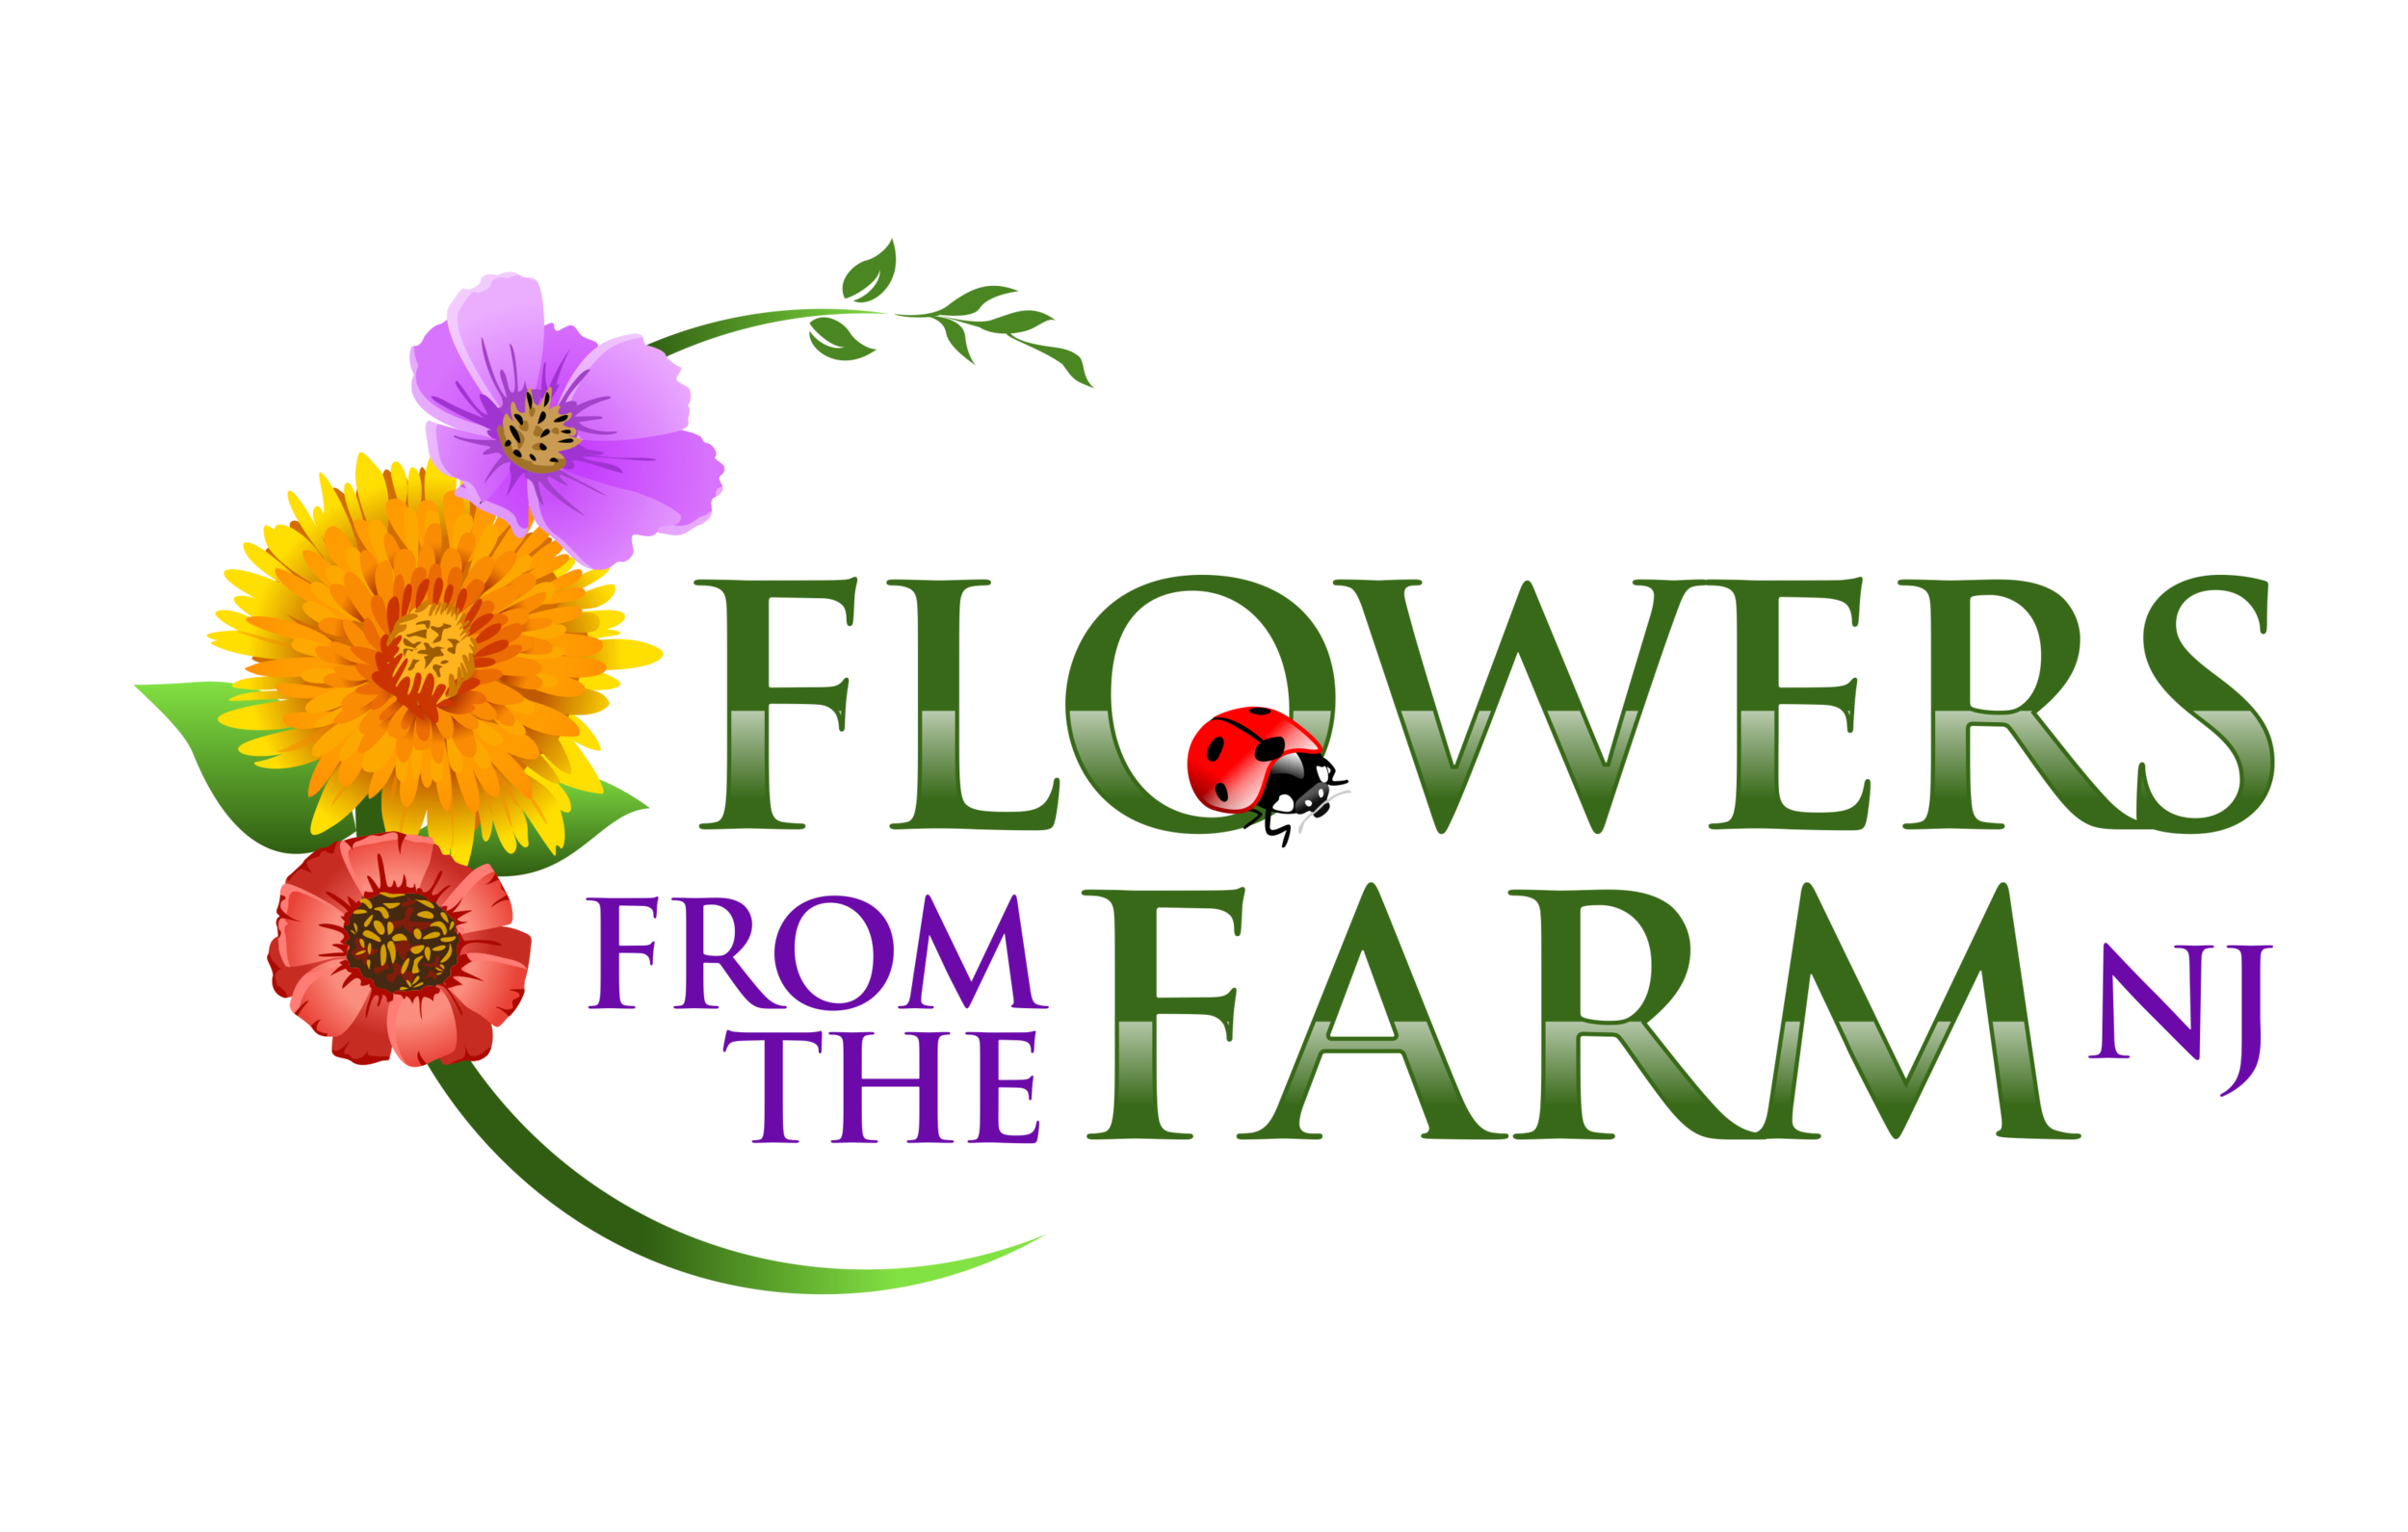 Flowers from the farm. Garland clipart marigold